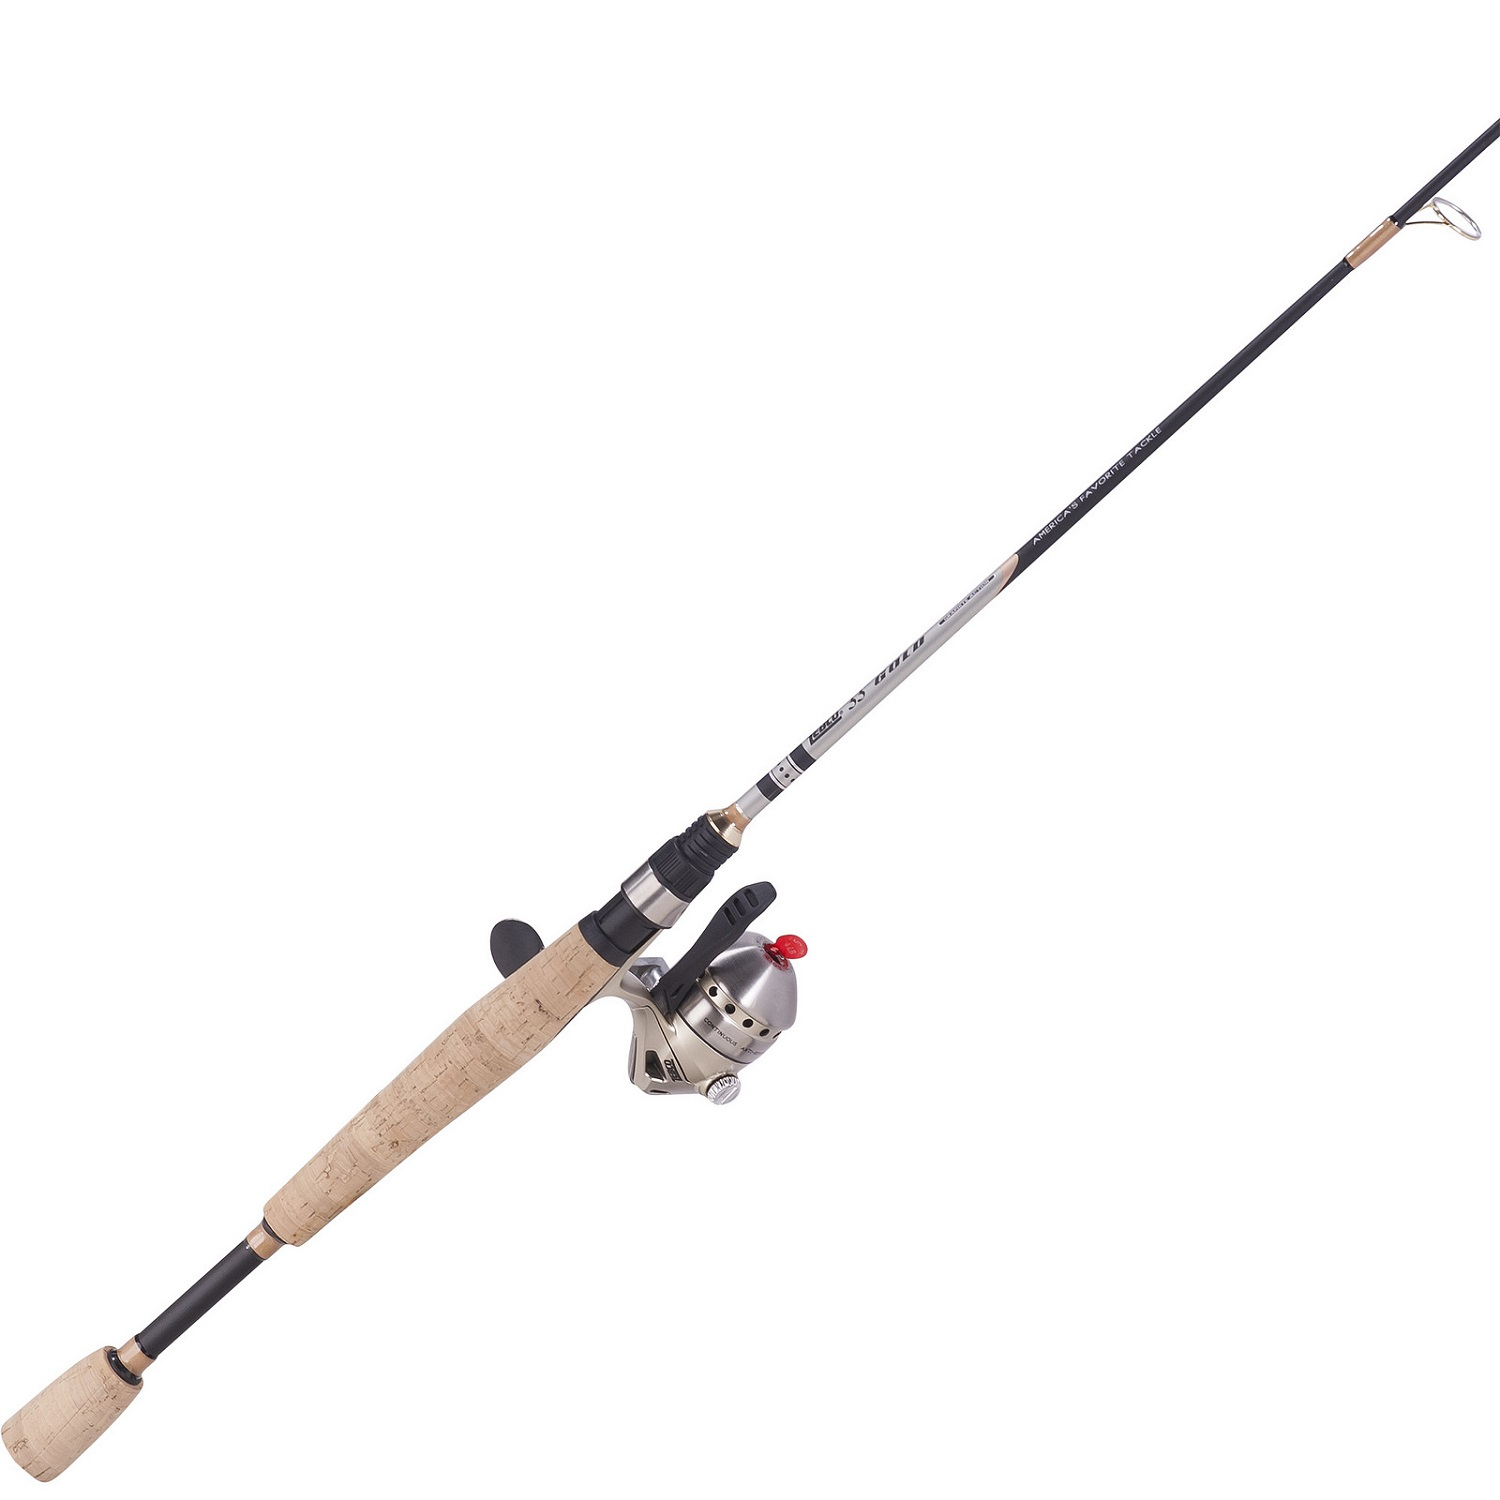 Zebco 33 micro triggerspin gold 5ft 2 pc ul spincast combo for Micro fishing pole